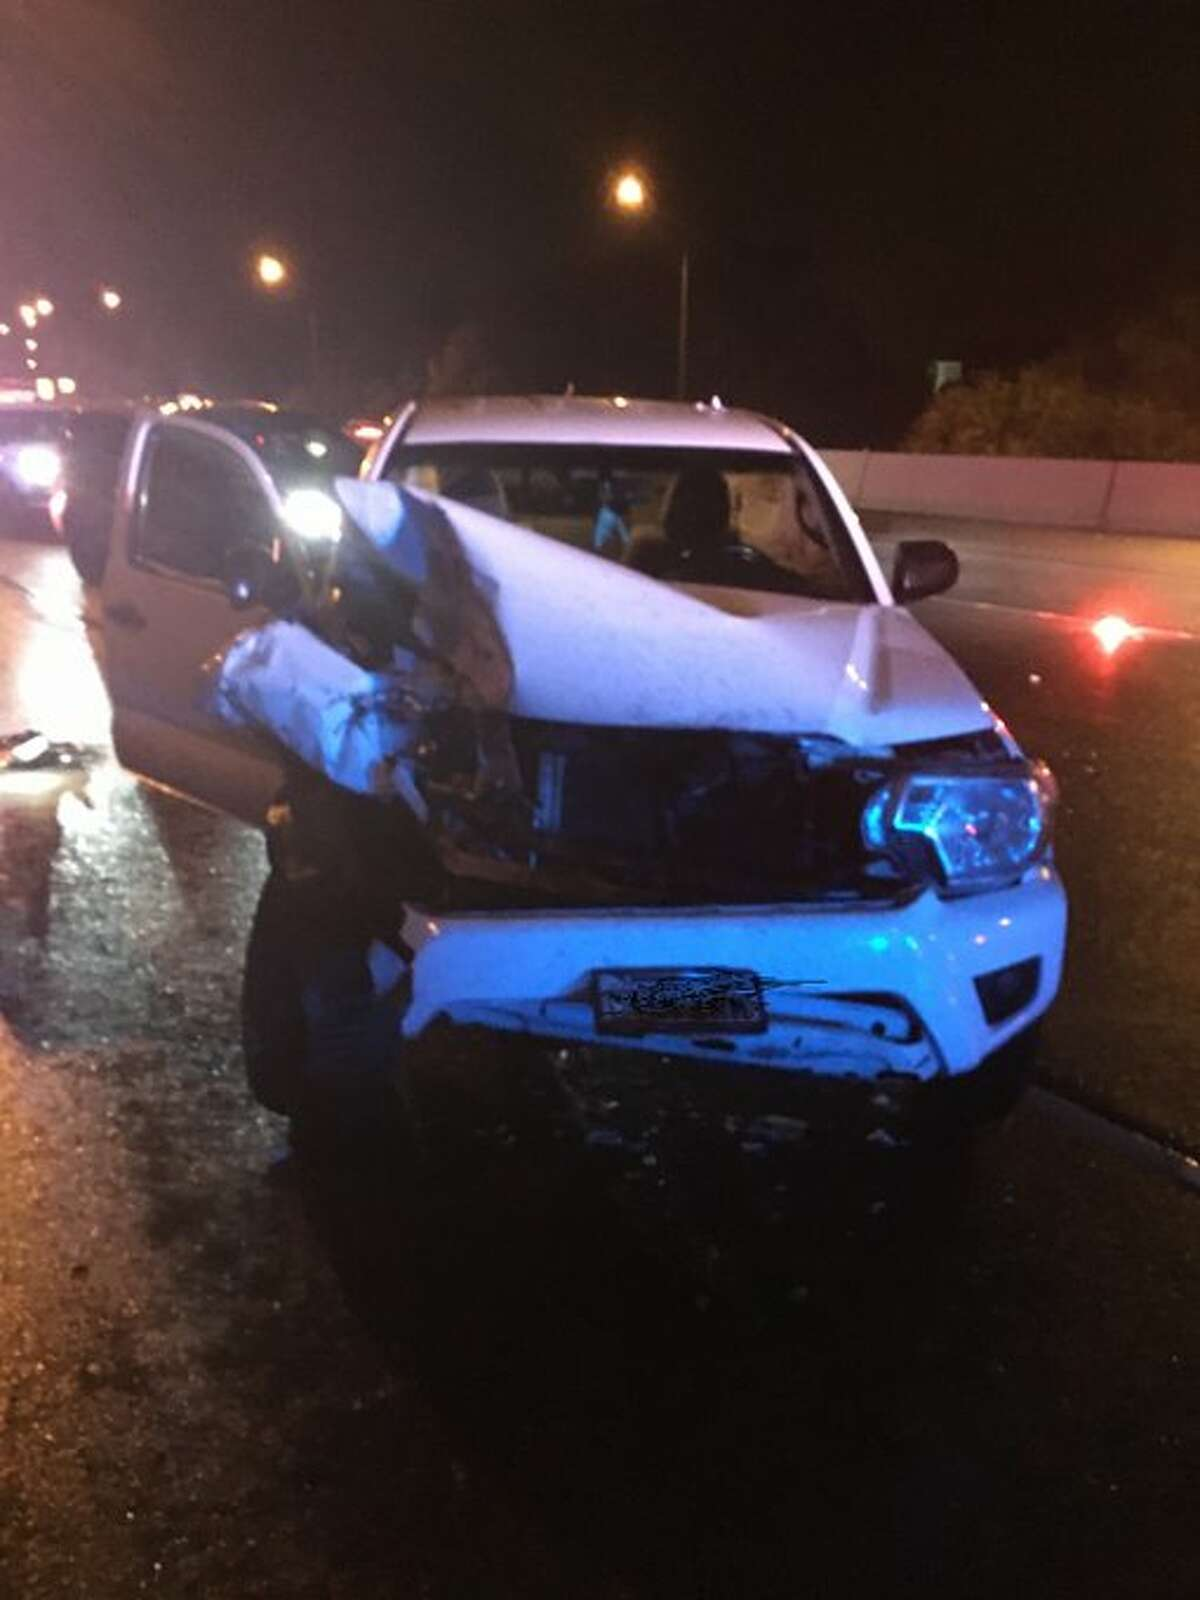 Damage to the driver's vehicle after it crashed into the back of a trooper's vehicle, pulled over in response to a three-vehicle crash on northbound I-405 in Bothell on Saturday.